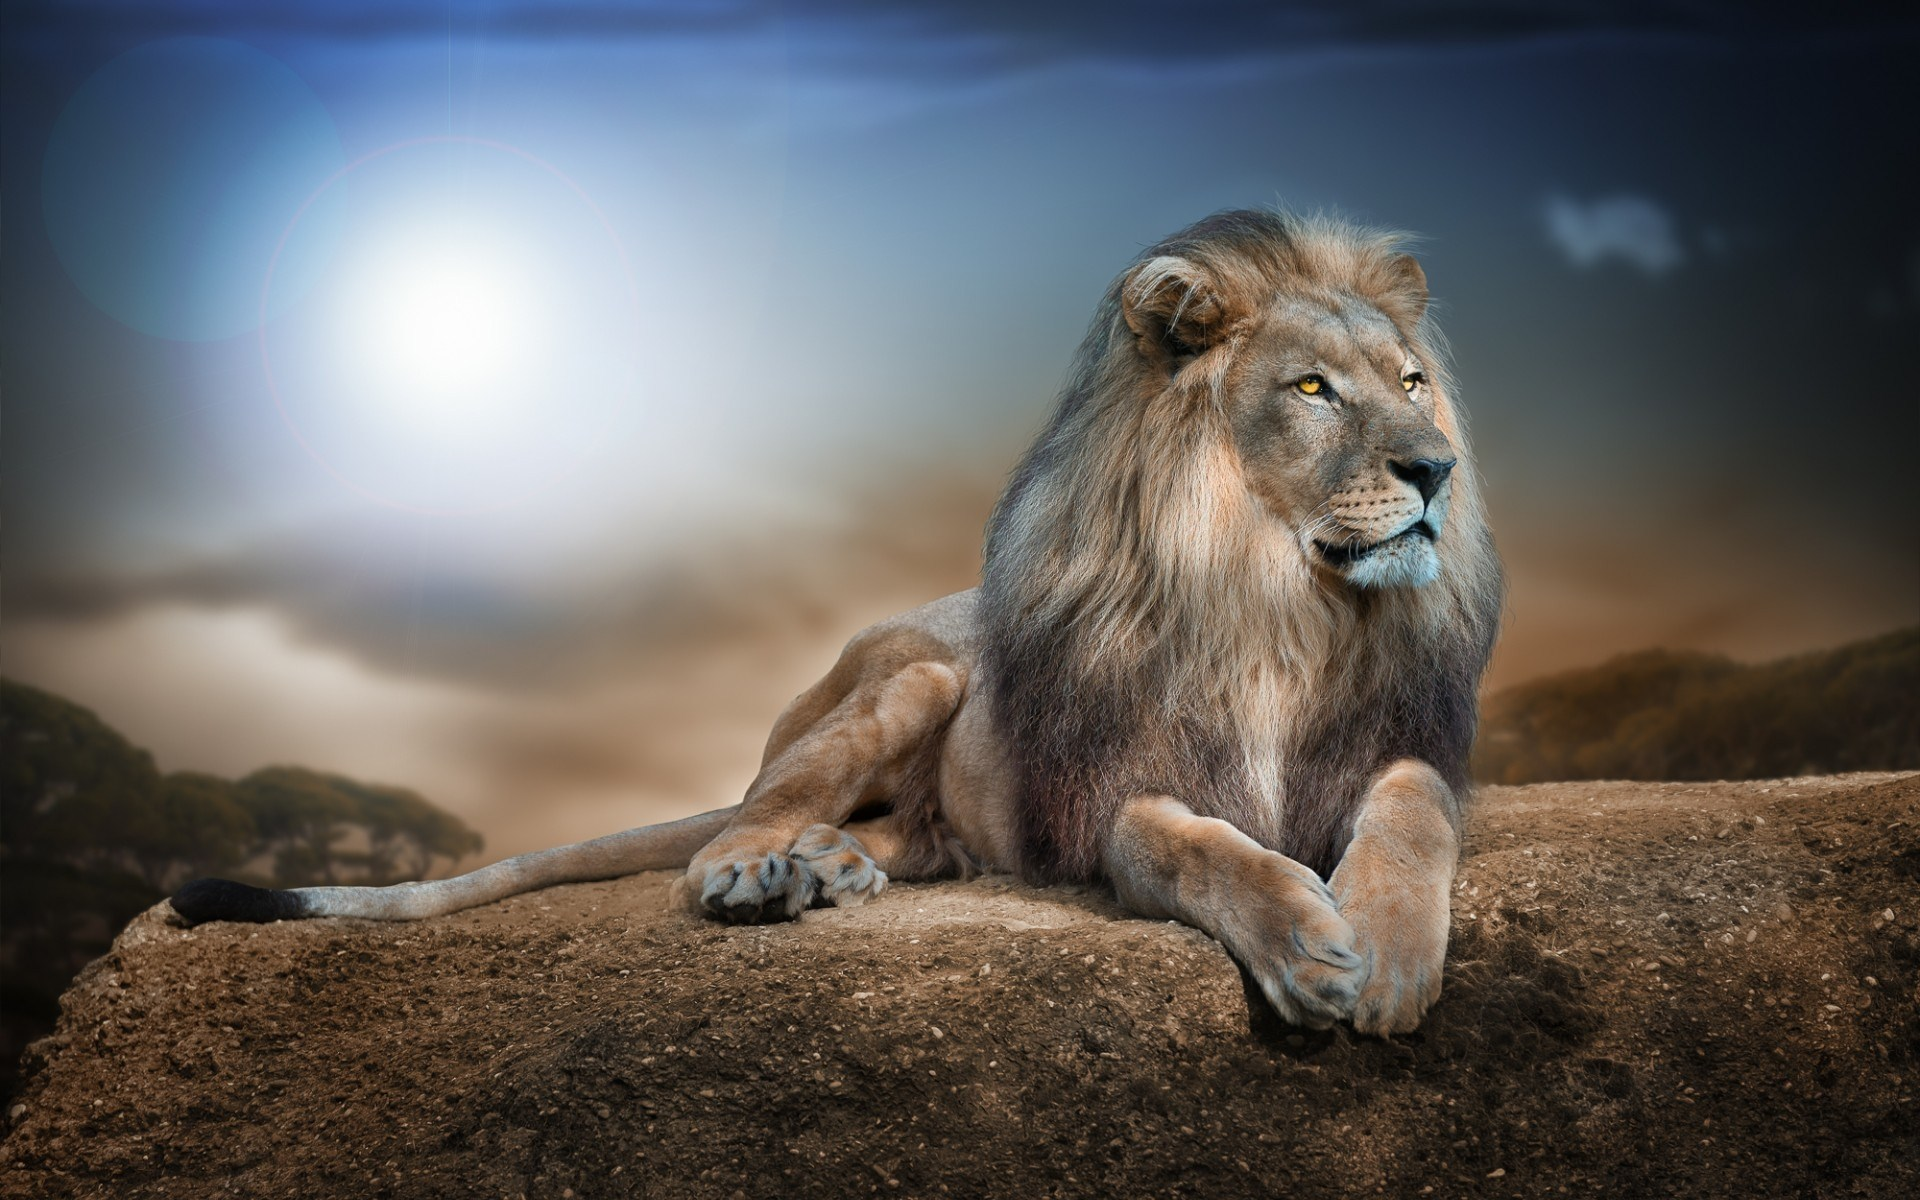 Lion HD Wallpapers | Lion HD Pictures | Free Download – HD